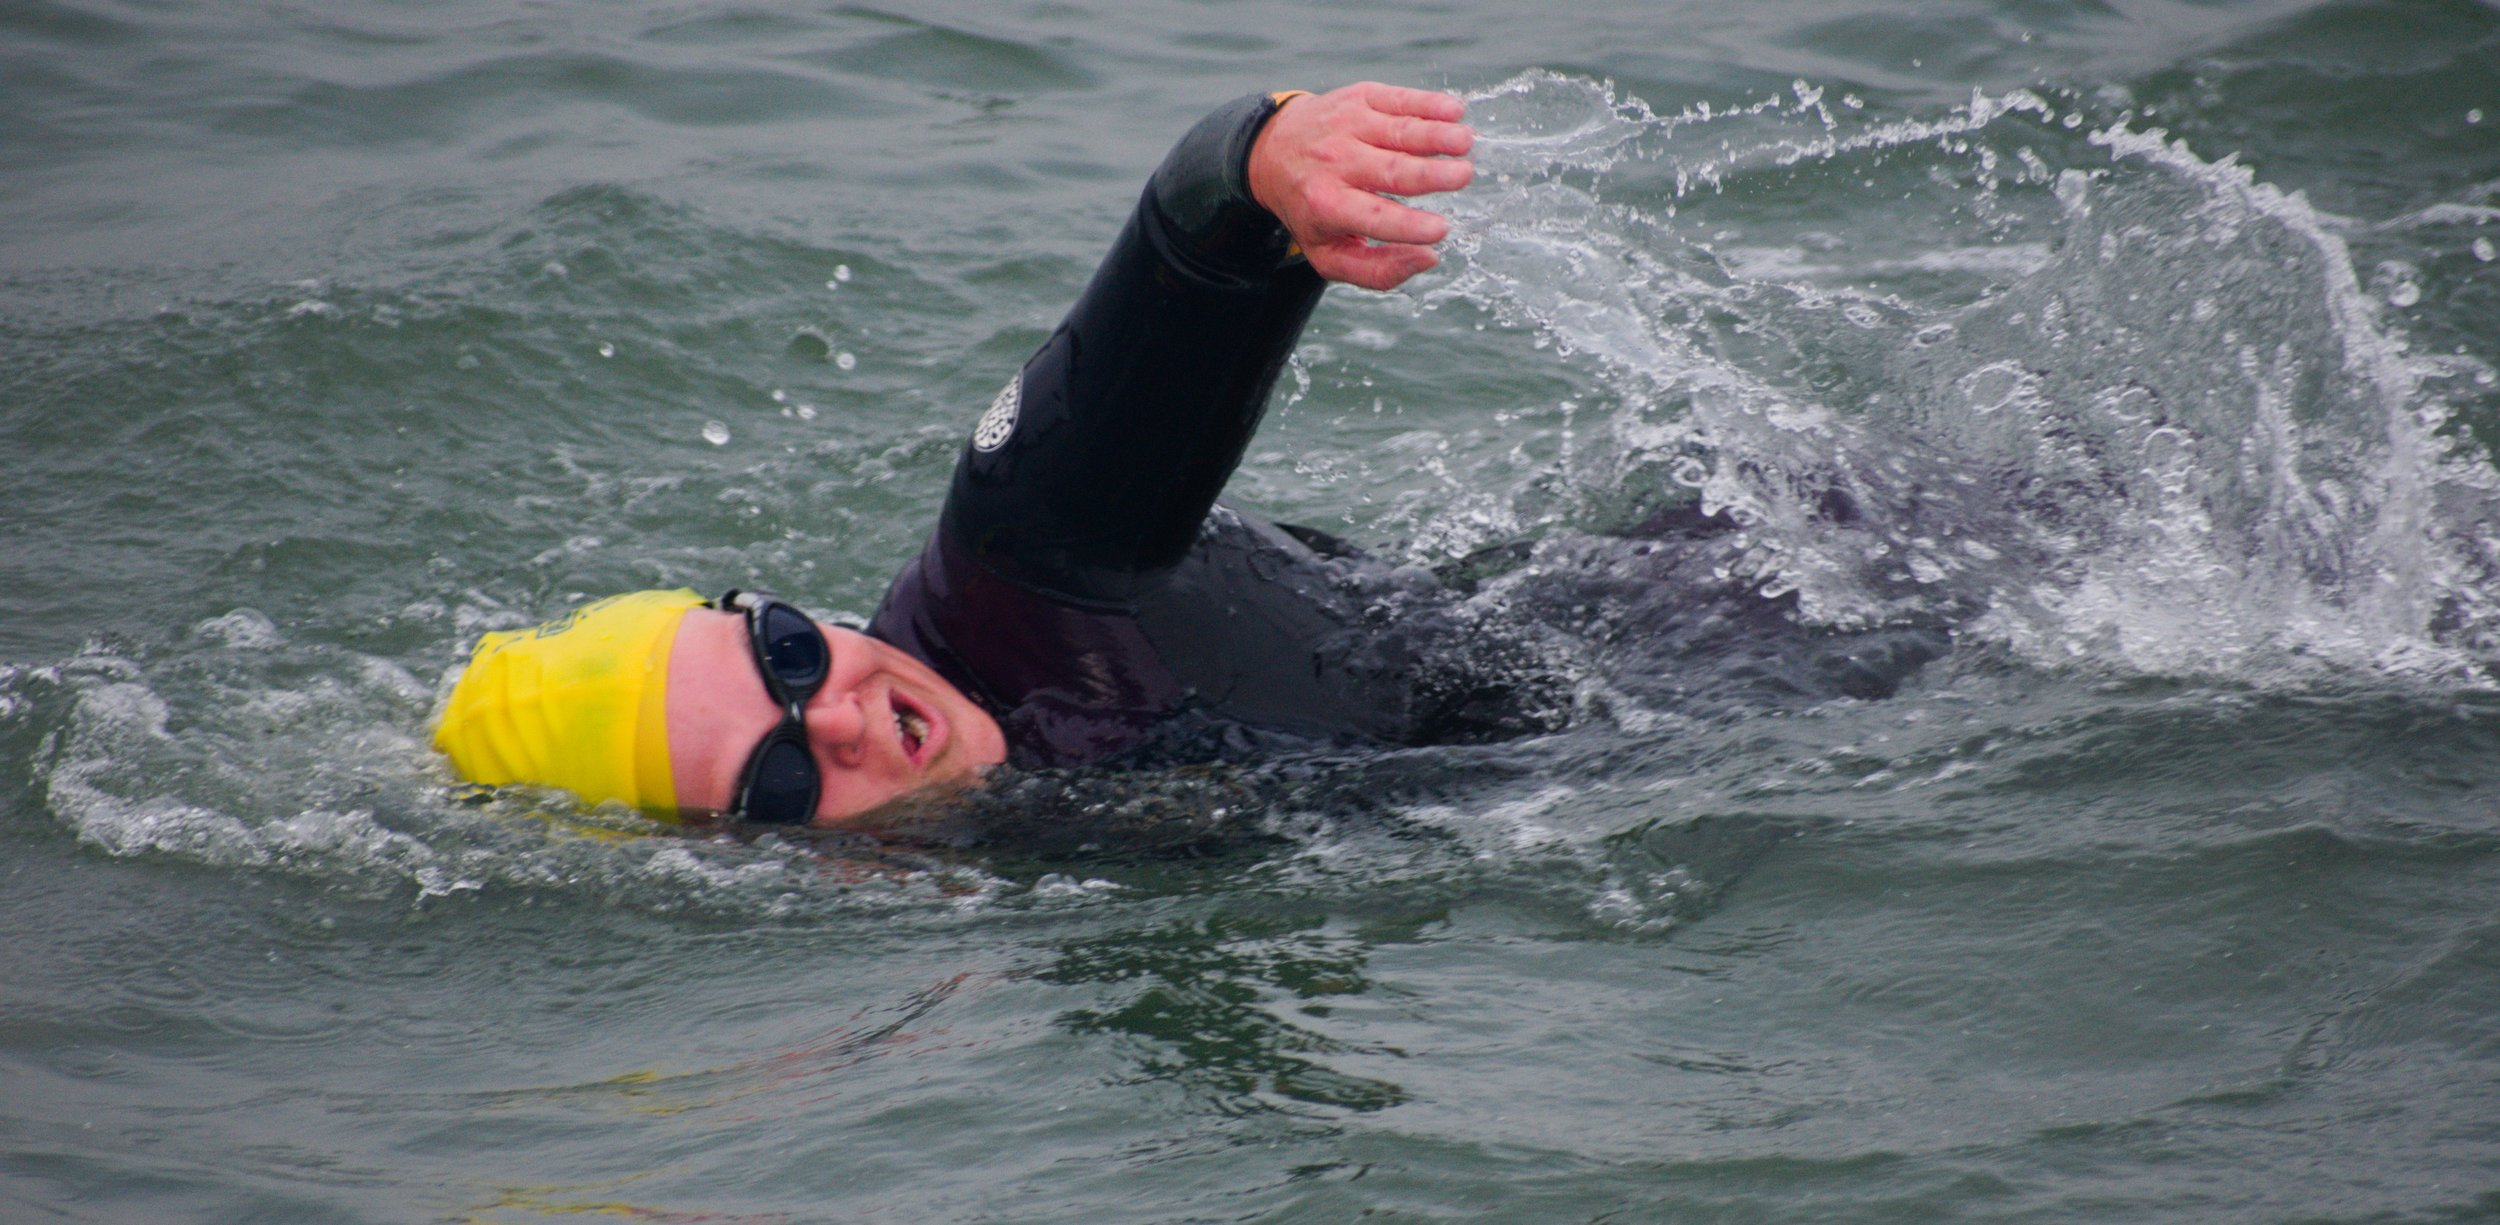 Wearing a wetsuit for open water swimming